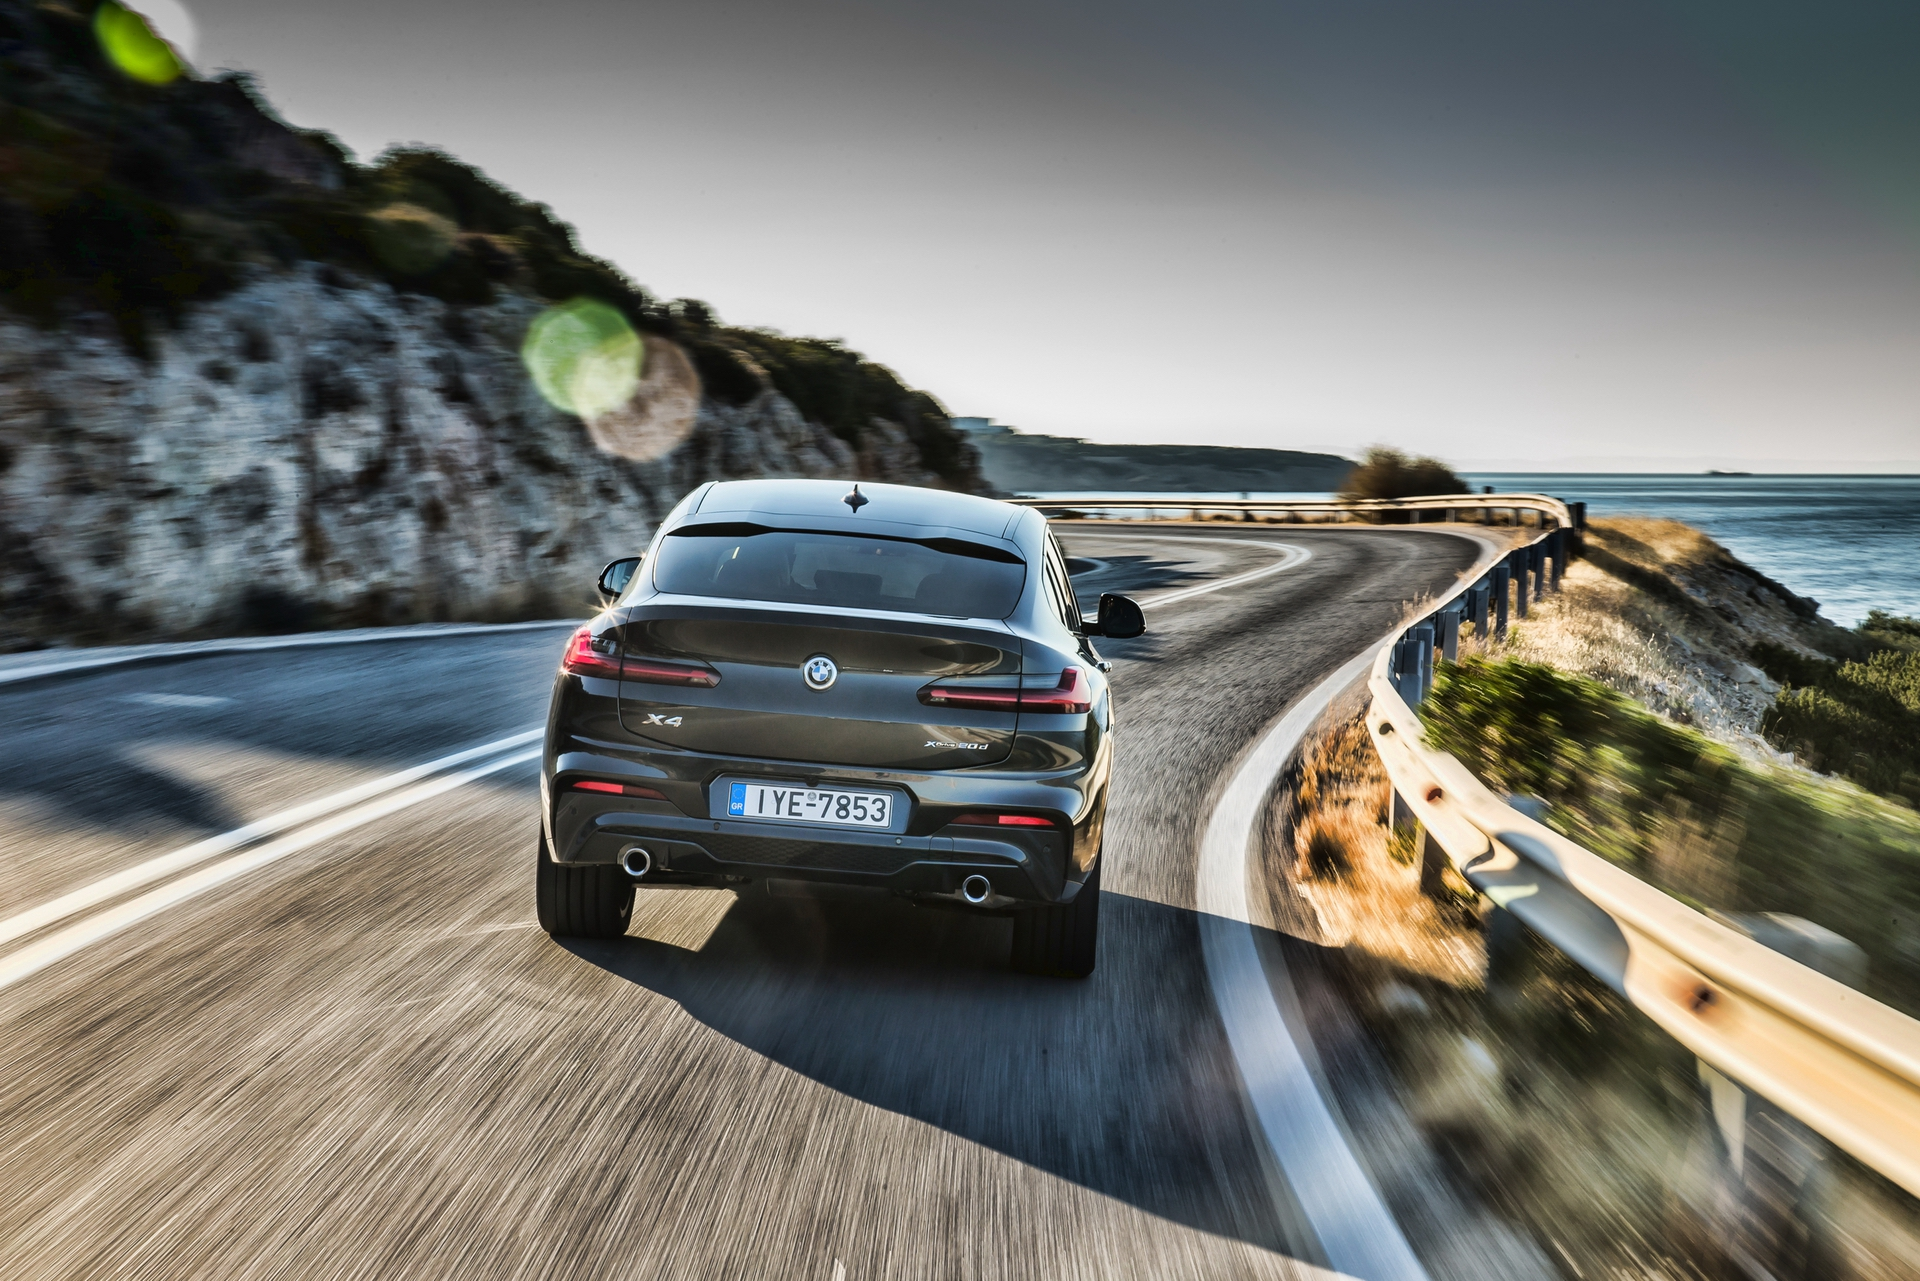 BMW_X4_greek_presskit_0097